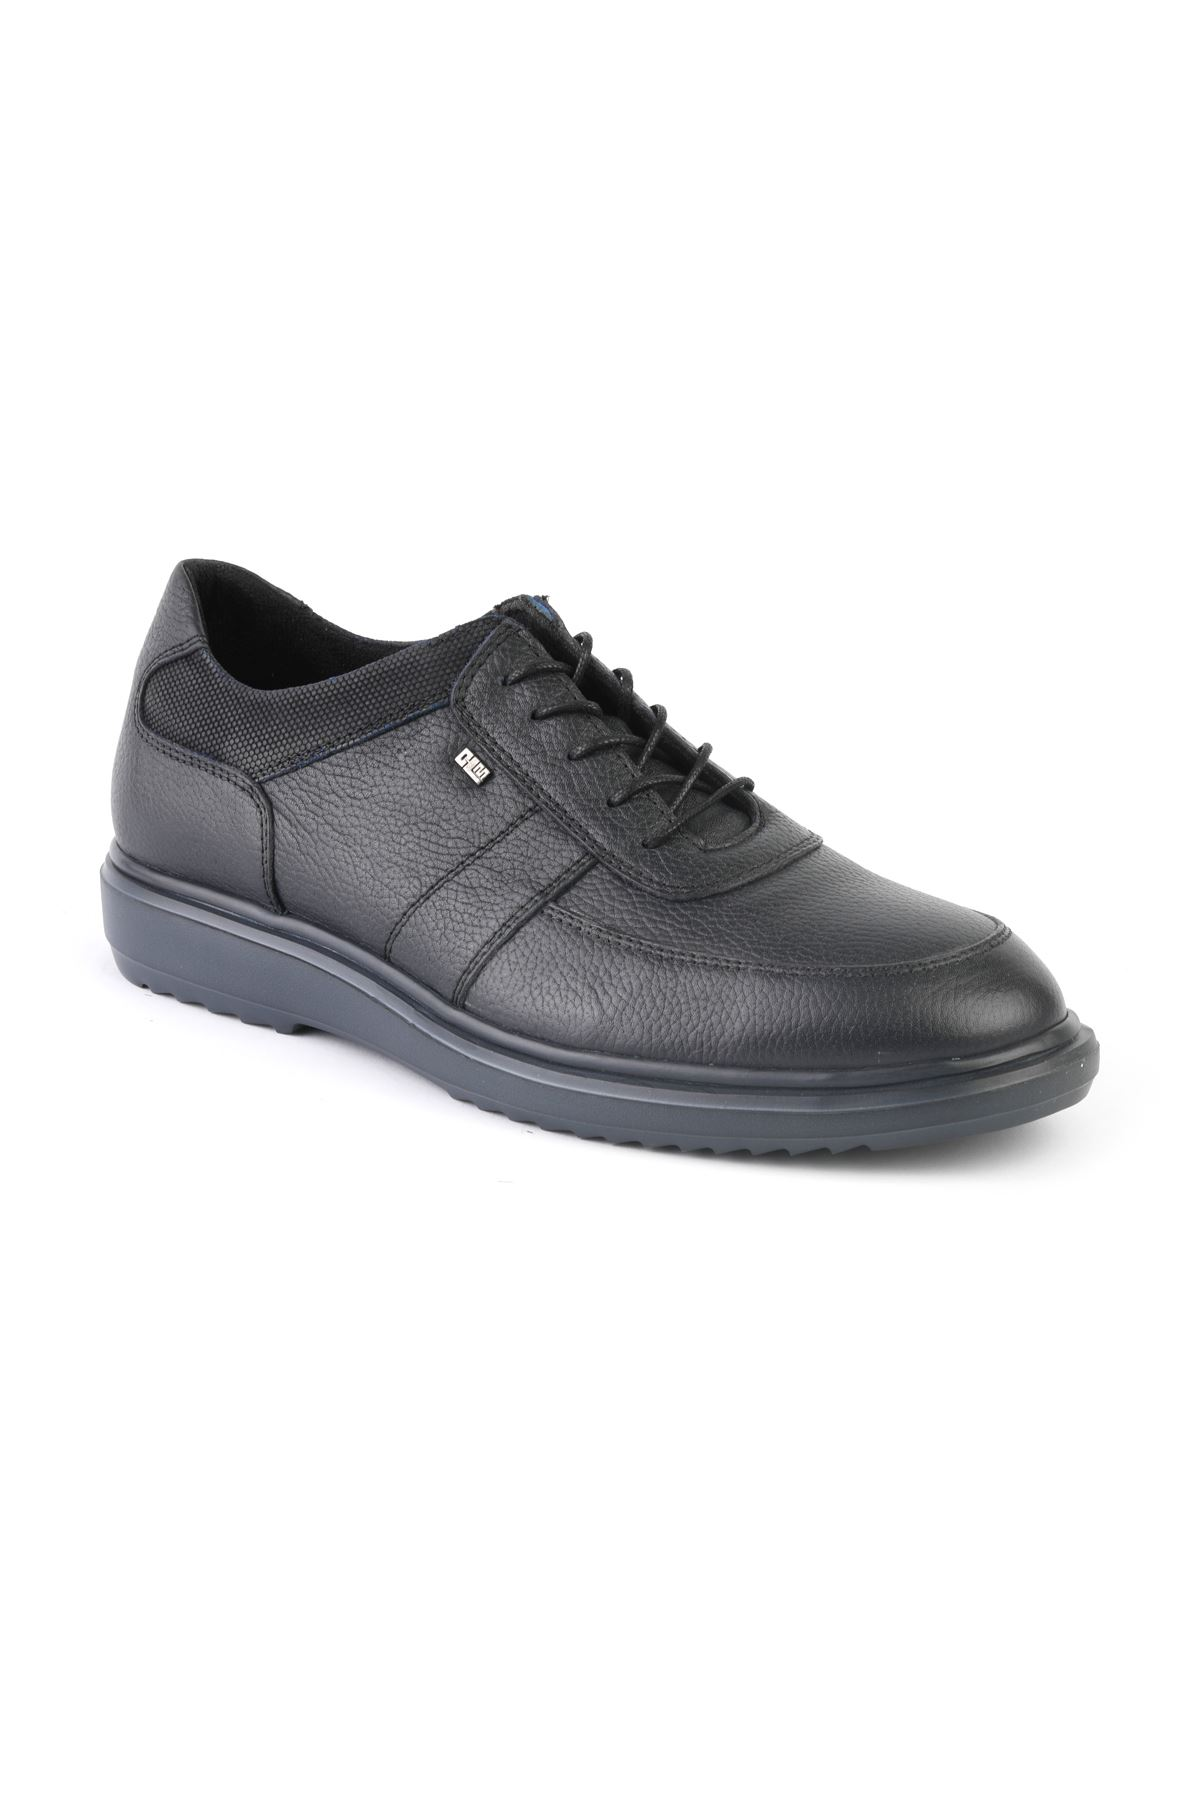 Libero T1200 Black Casual Shoes